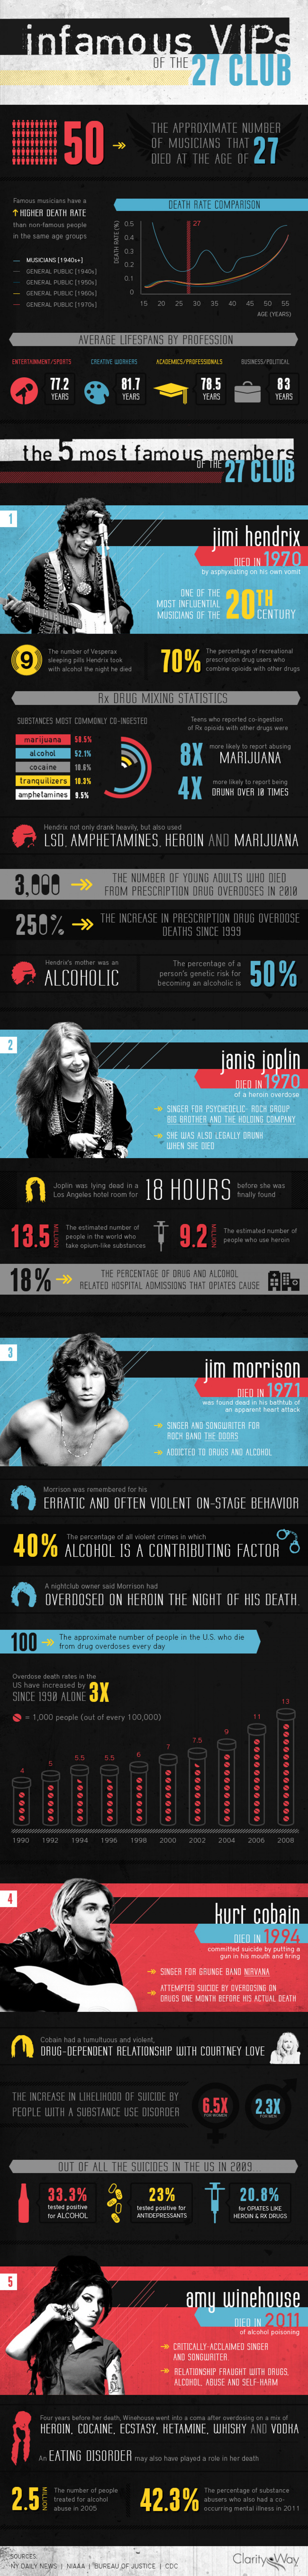 Dead Rockers: Infamous VIPs of the 27 Club Infographic